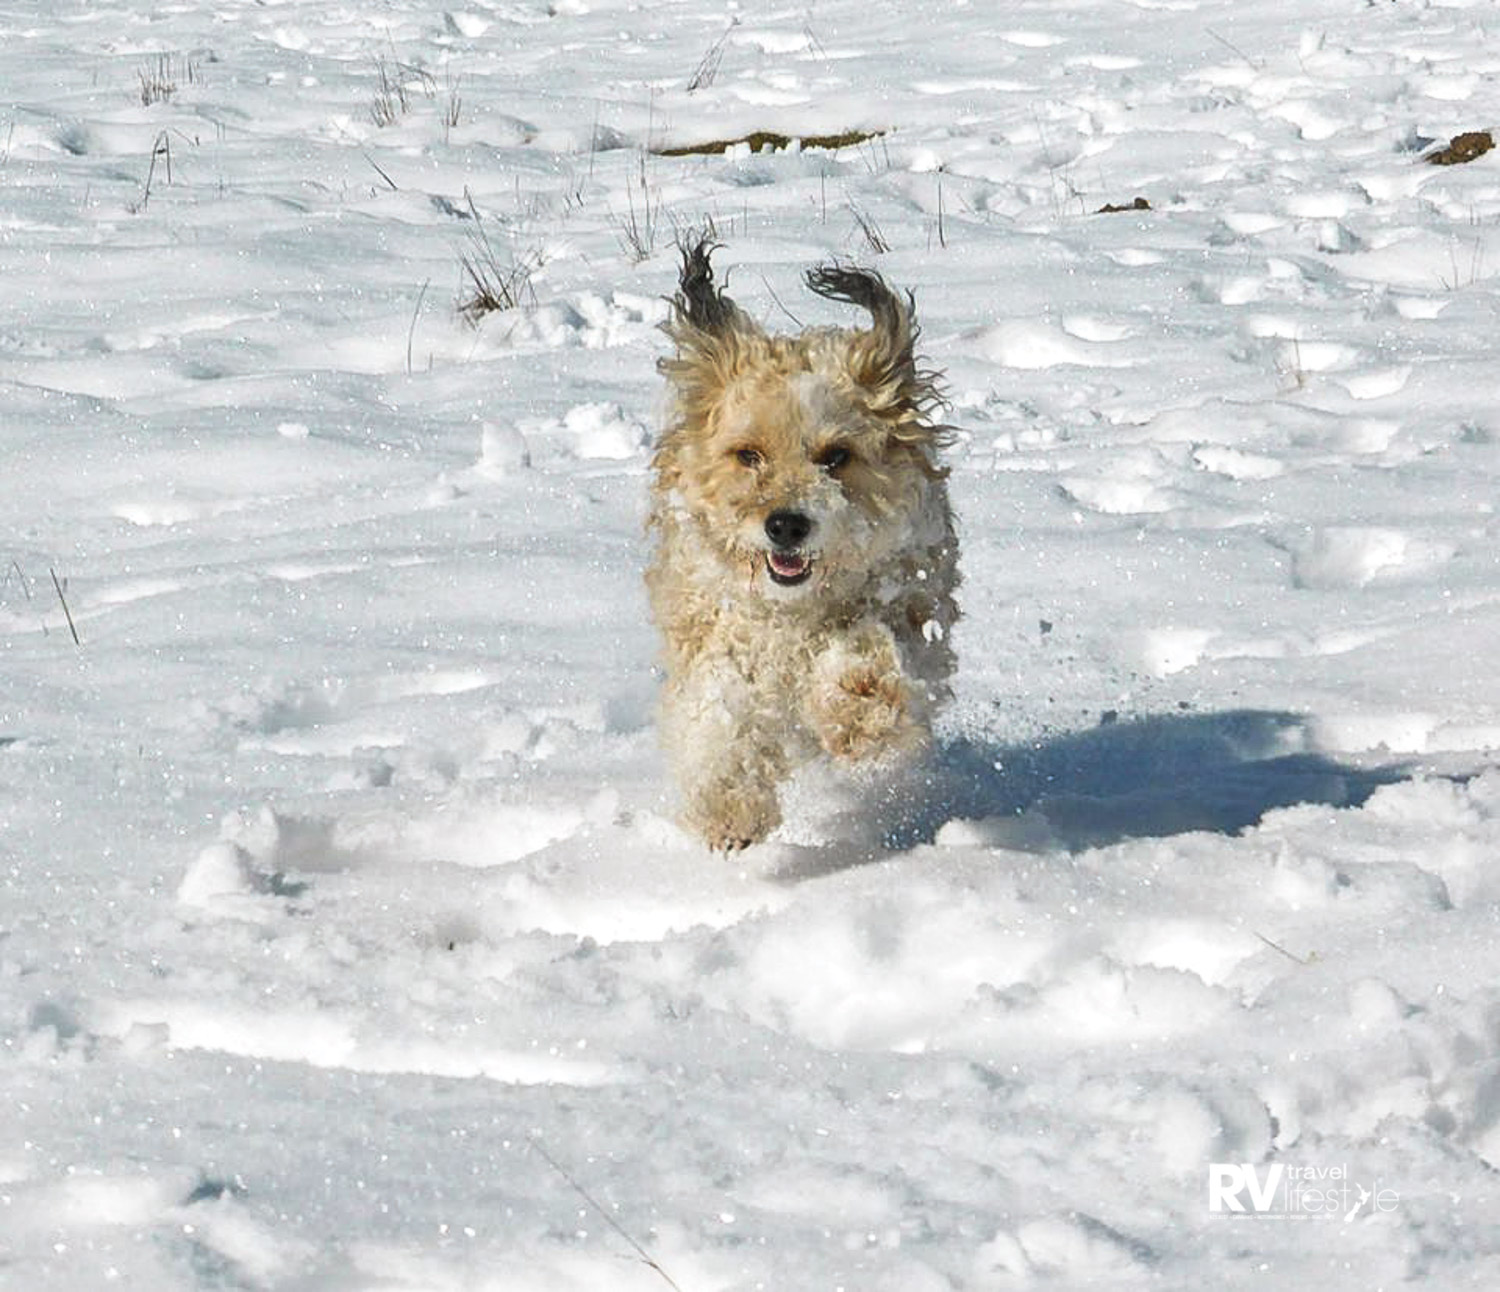 Oakly feeling excited in the snow